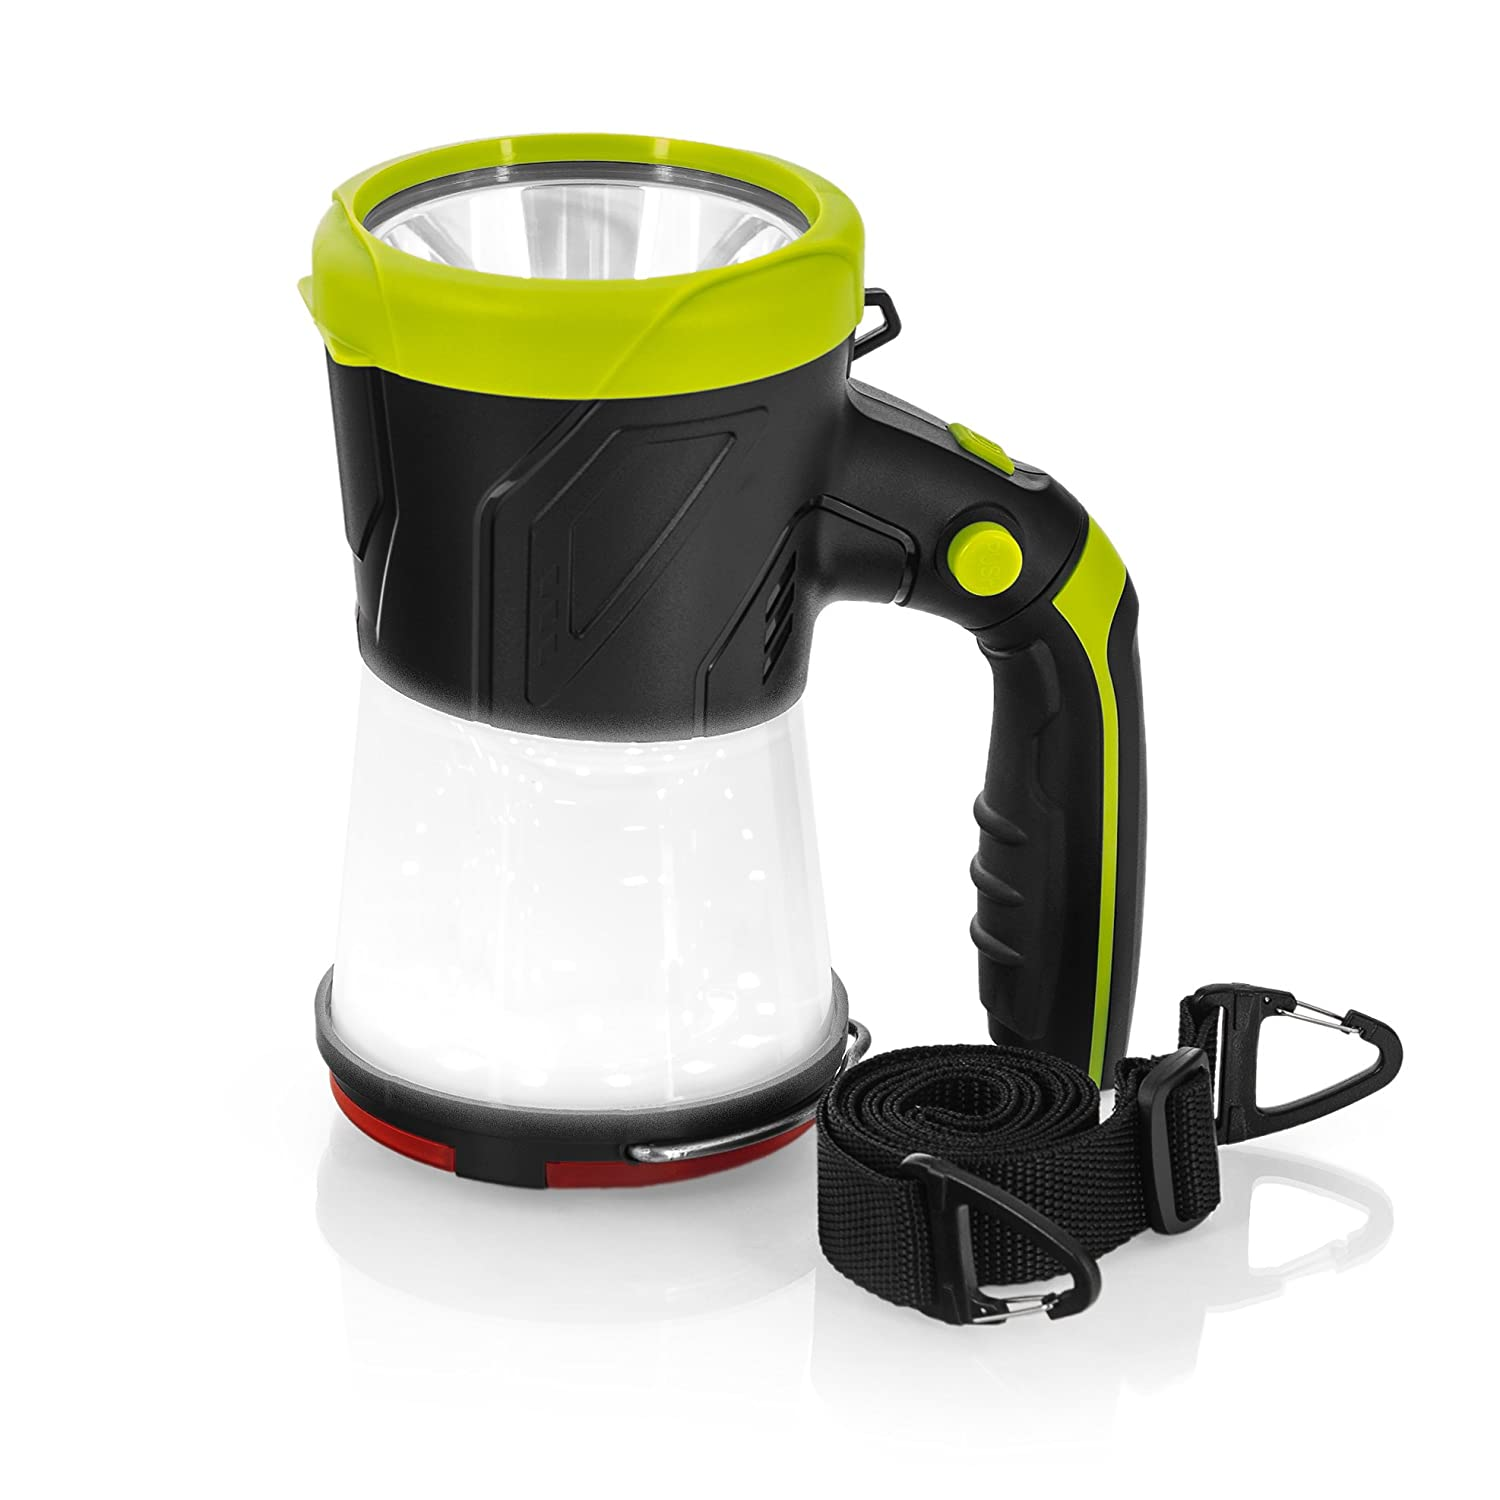 Great for hiking USB Charging Cord Included Rechargeable LED lantern Flashlight Super Bright 4 in 1 Portable LED Searchlight /& Torch Light Camping Gear Indoor-Outdoor Use Shoulder Strap Included SAMLITE FBA/_20277-SL